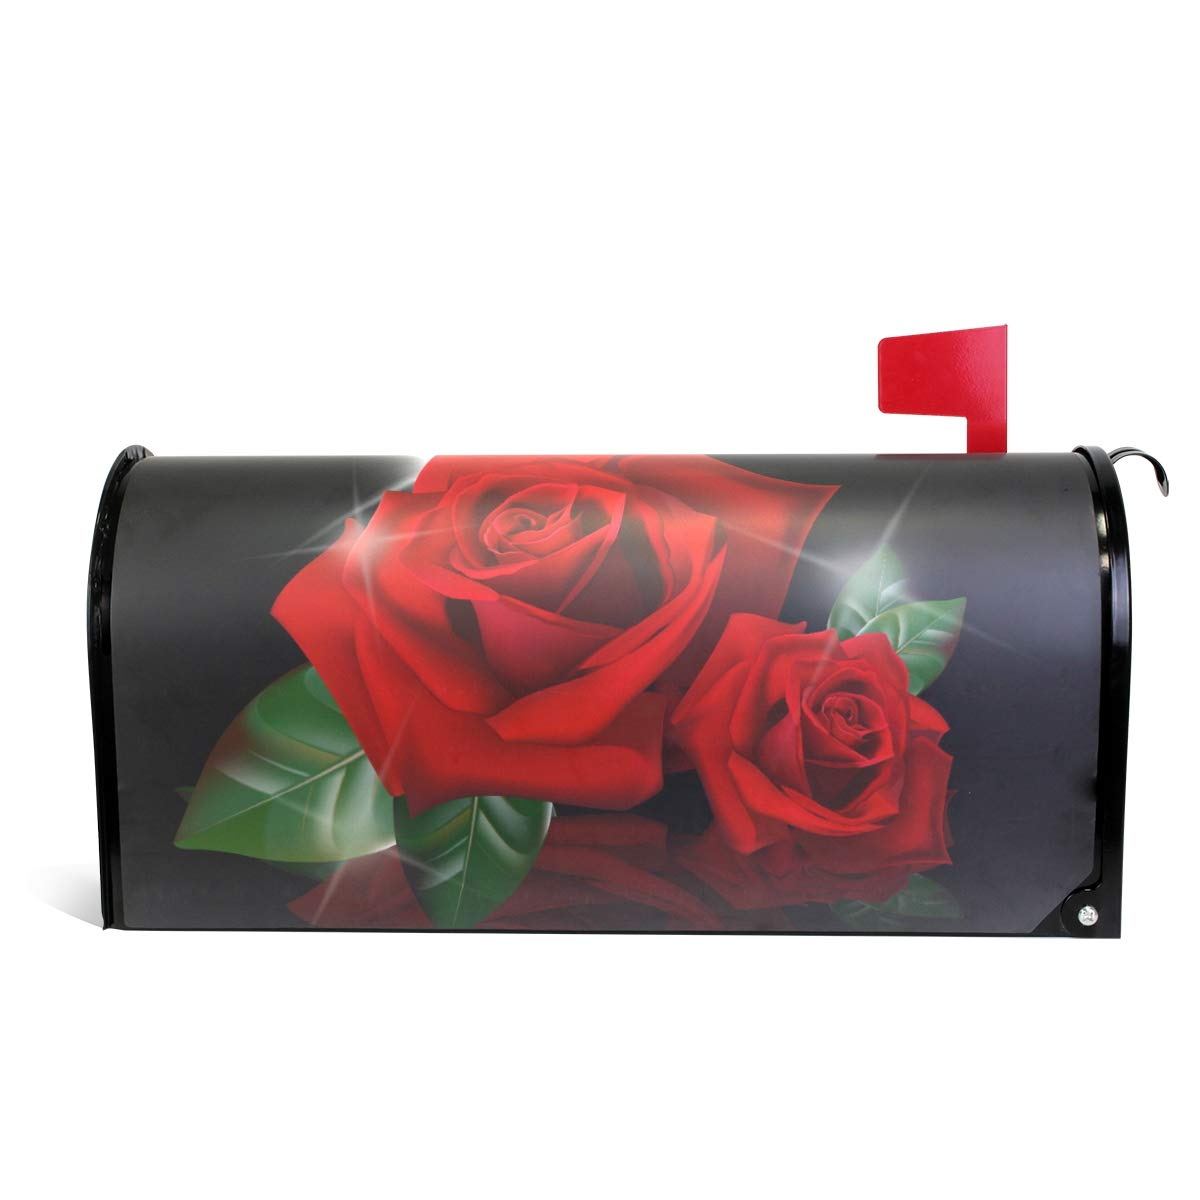 Fengye Sparkle Red Rose Art Mailbox Magnetic Cover Medium Large Capacity Post Box Covers